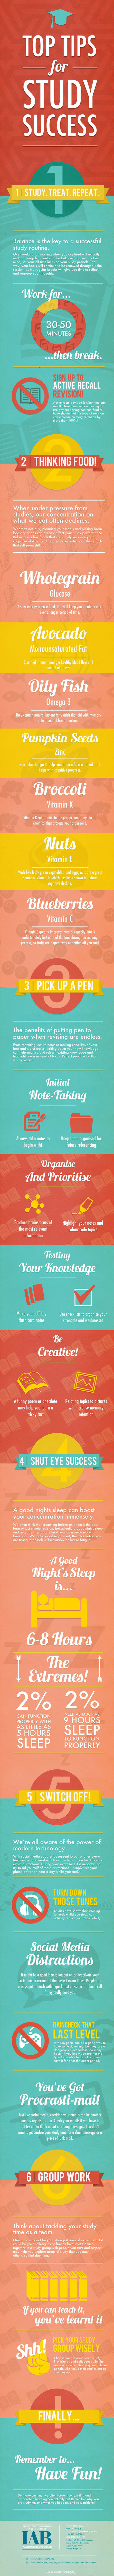 Top Tips For Study Success Infographic - e-Learning Infographics | Learning & Mind & Brain | Scoop.it